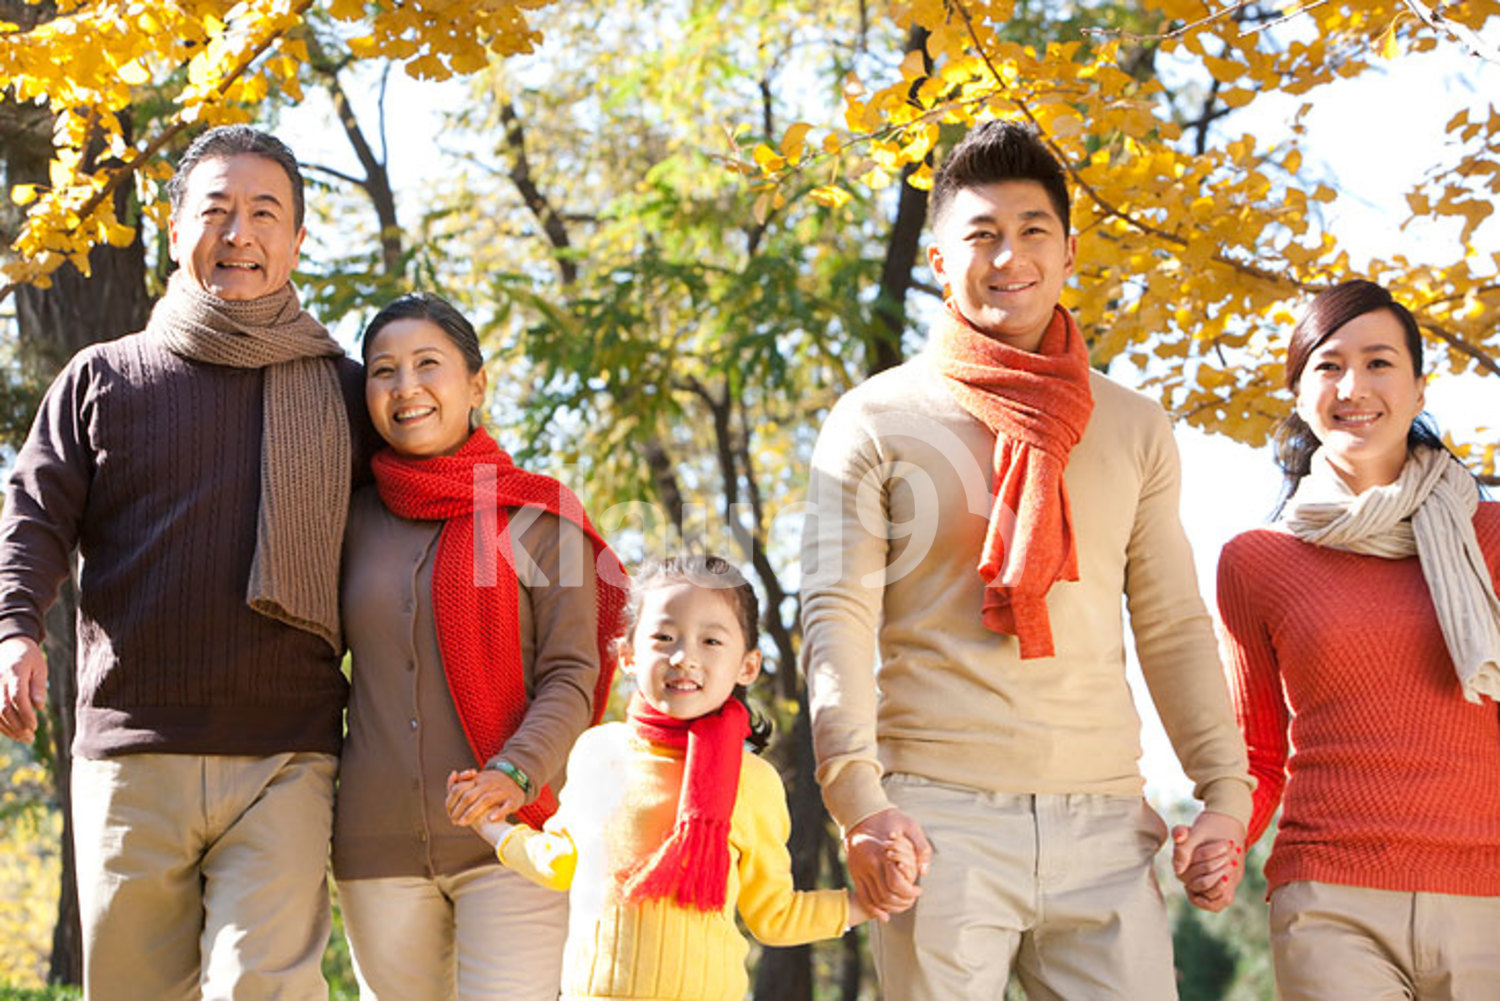 Chinese family walking in a park in autumn